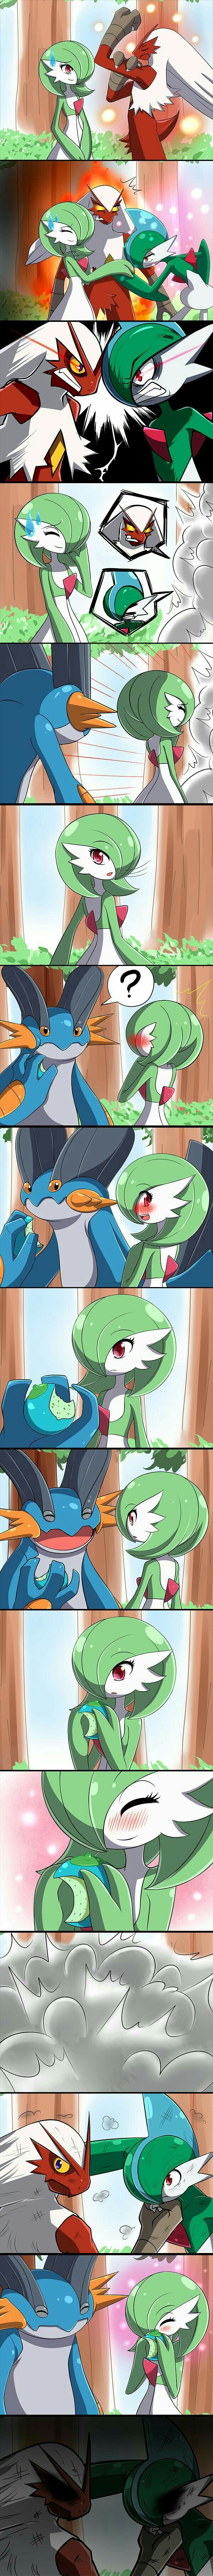 Gardevoir, Gallade, Blaziken, Swampert, funny, comic, fighting, blushing, text, berry, couple; Pokémon